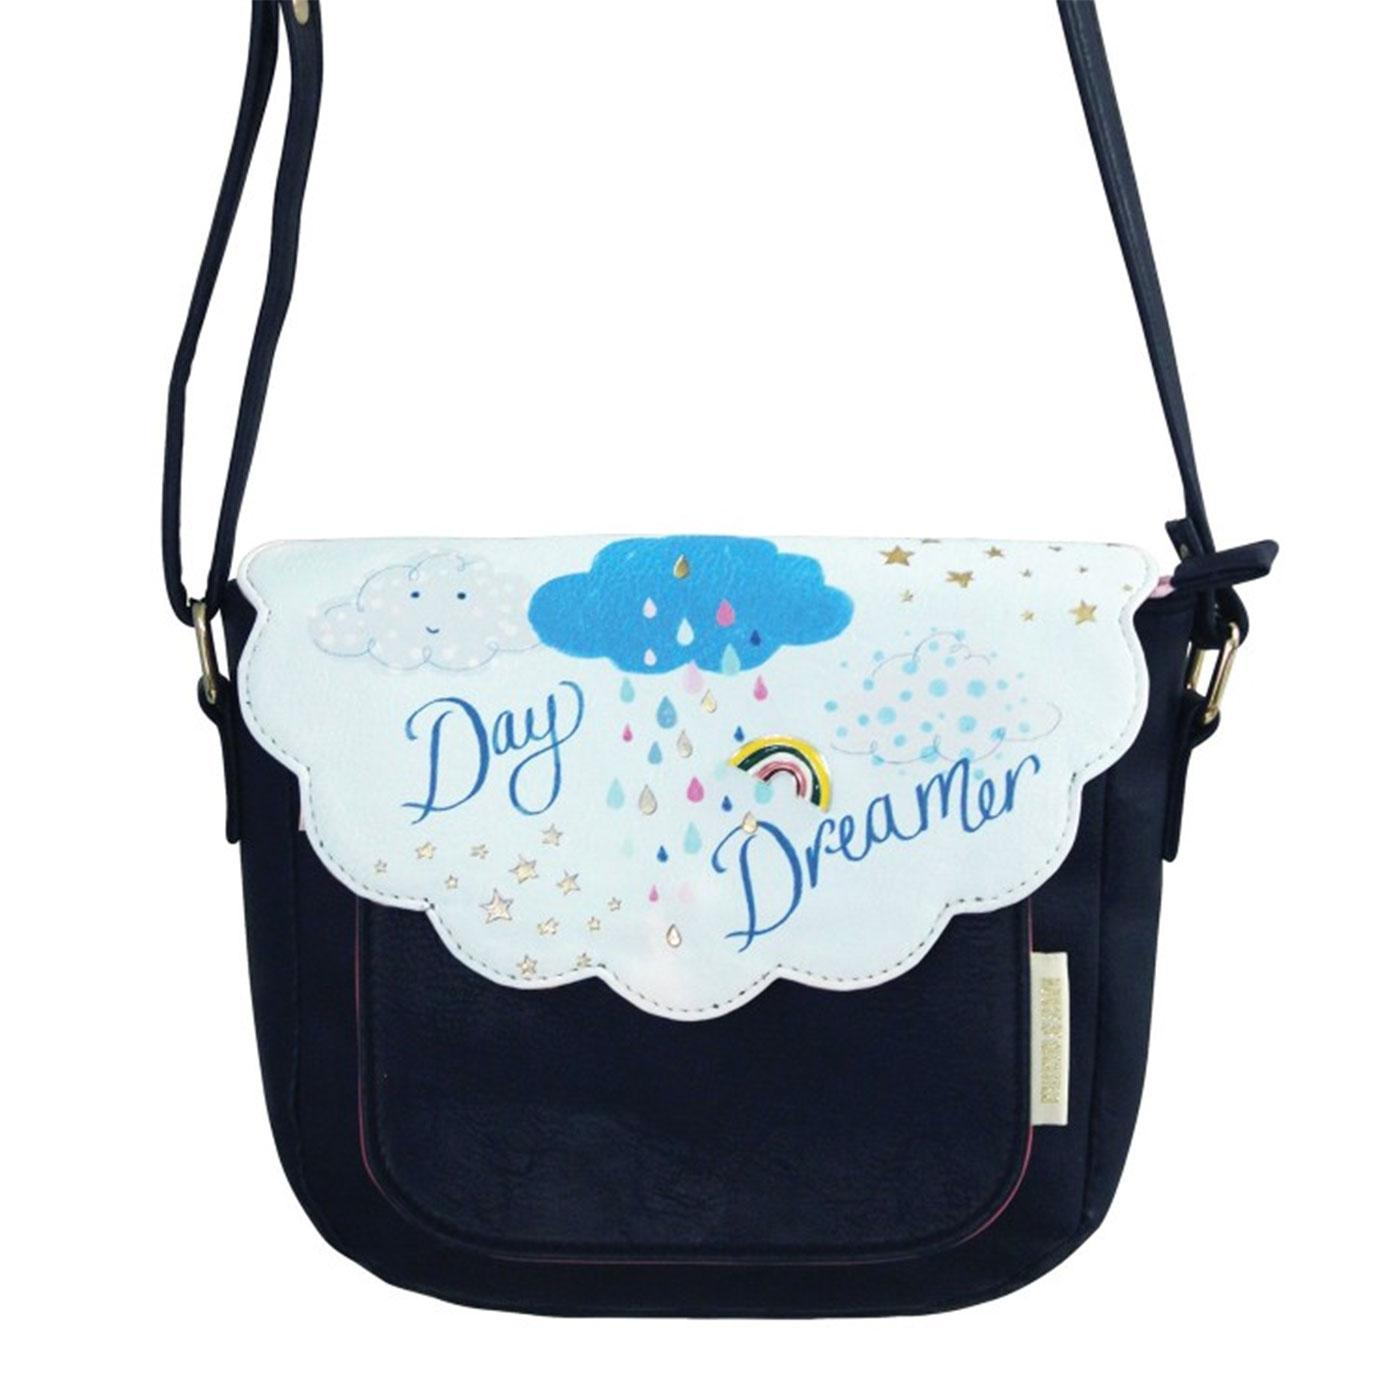 Daydreamer Keepsake Retro Saddle Bag Handbag